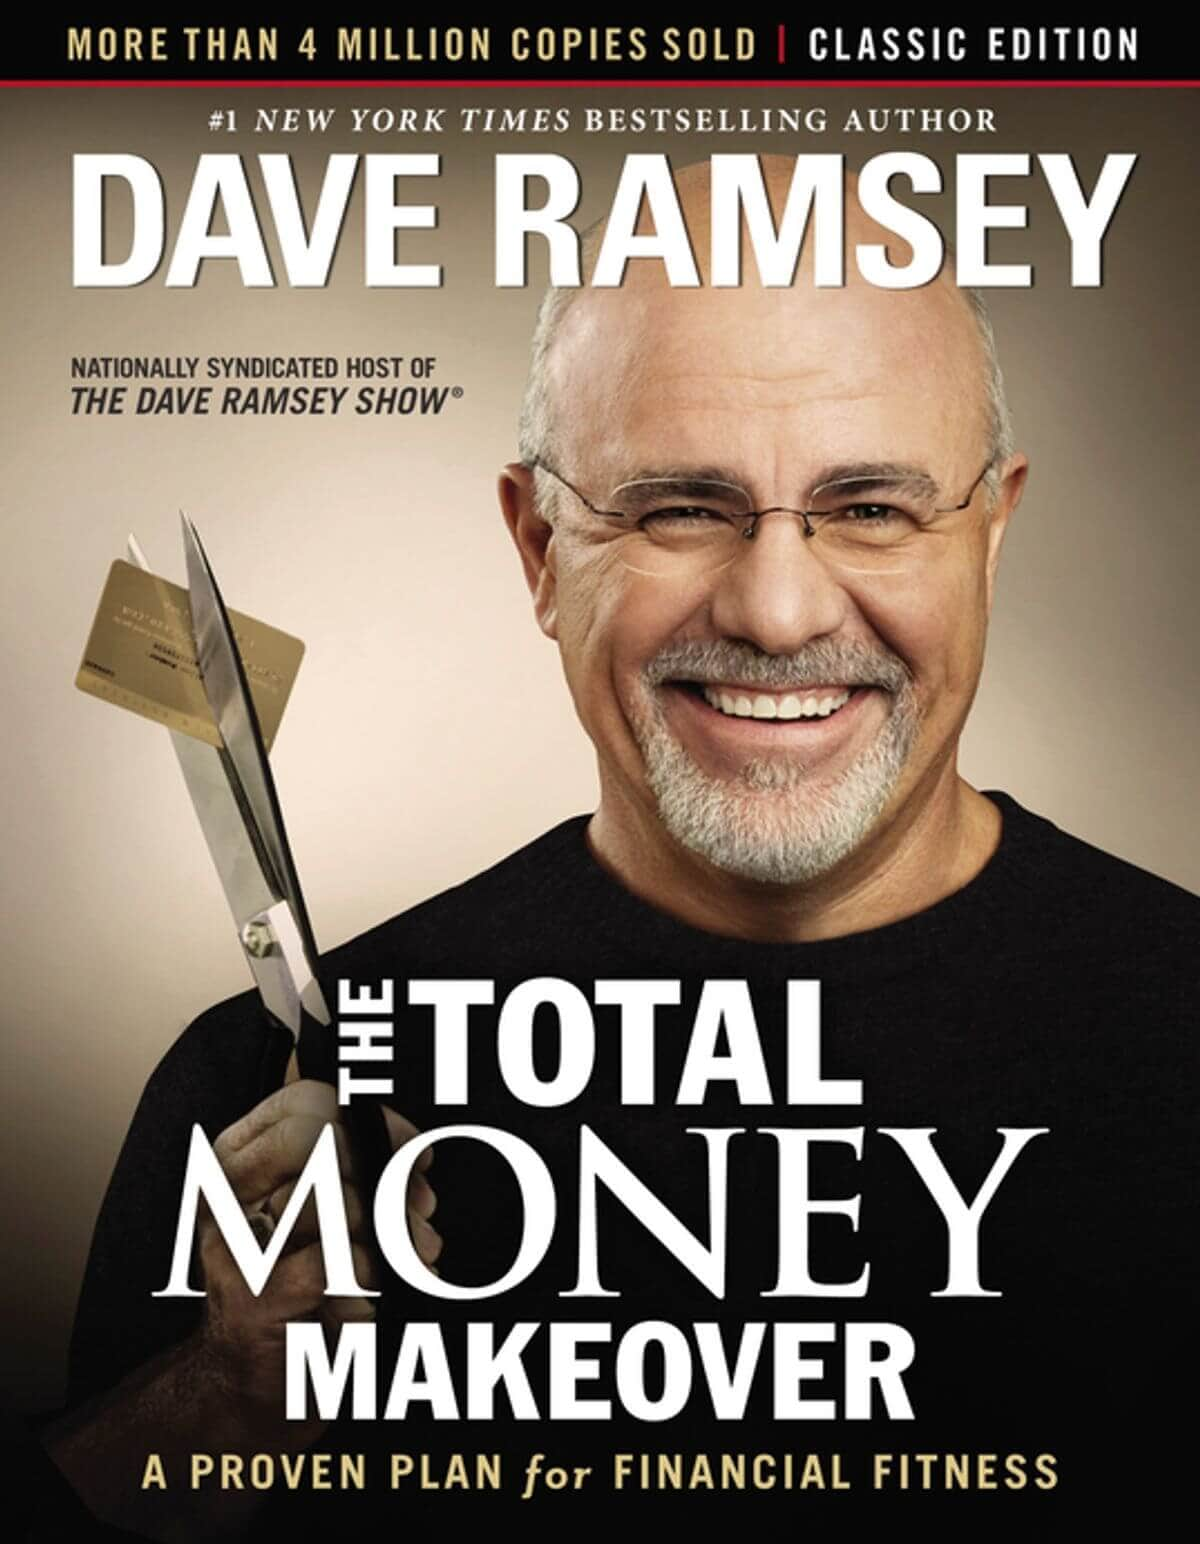 The-Total-Money-Makeover-A-Proven-Plan-for-Financial-Fitness-Dave-Ramsey